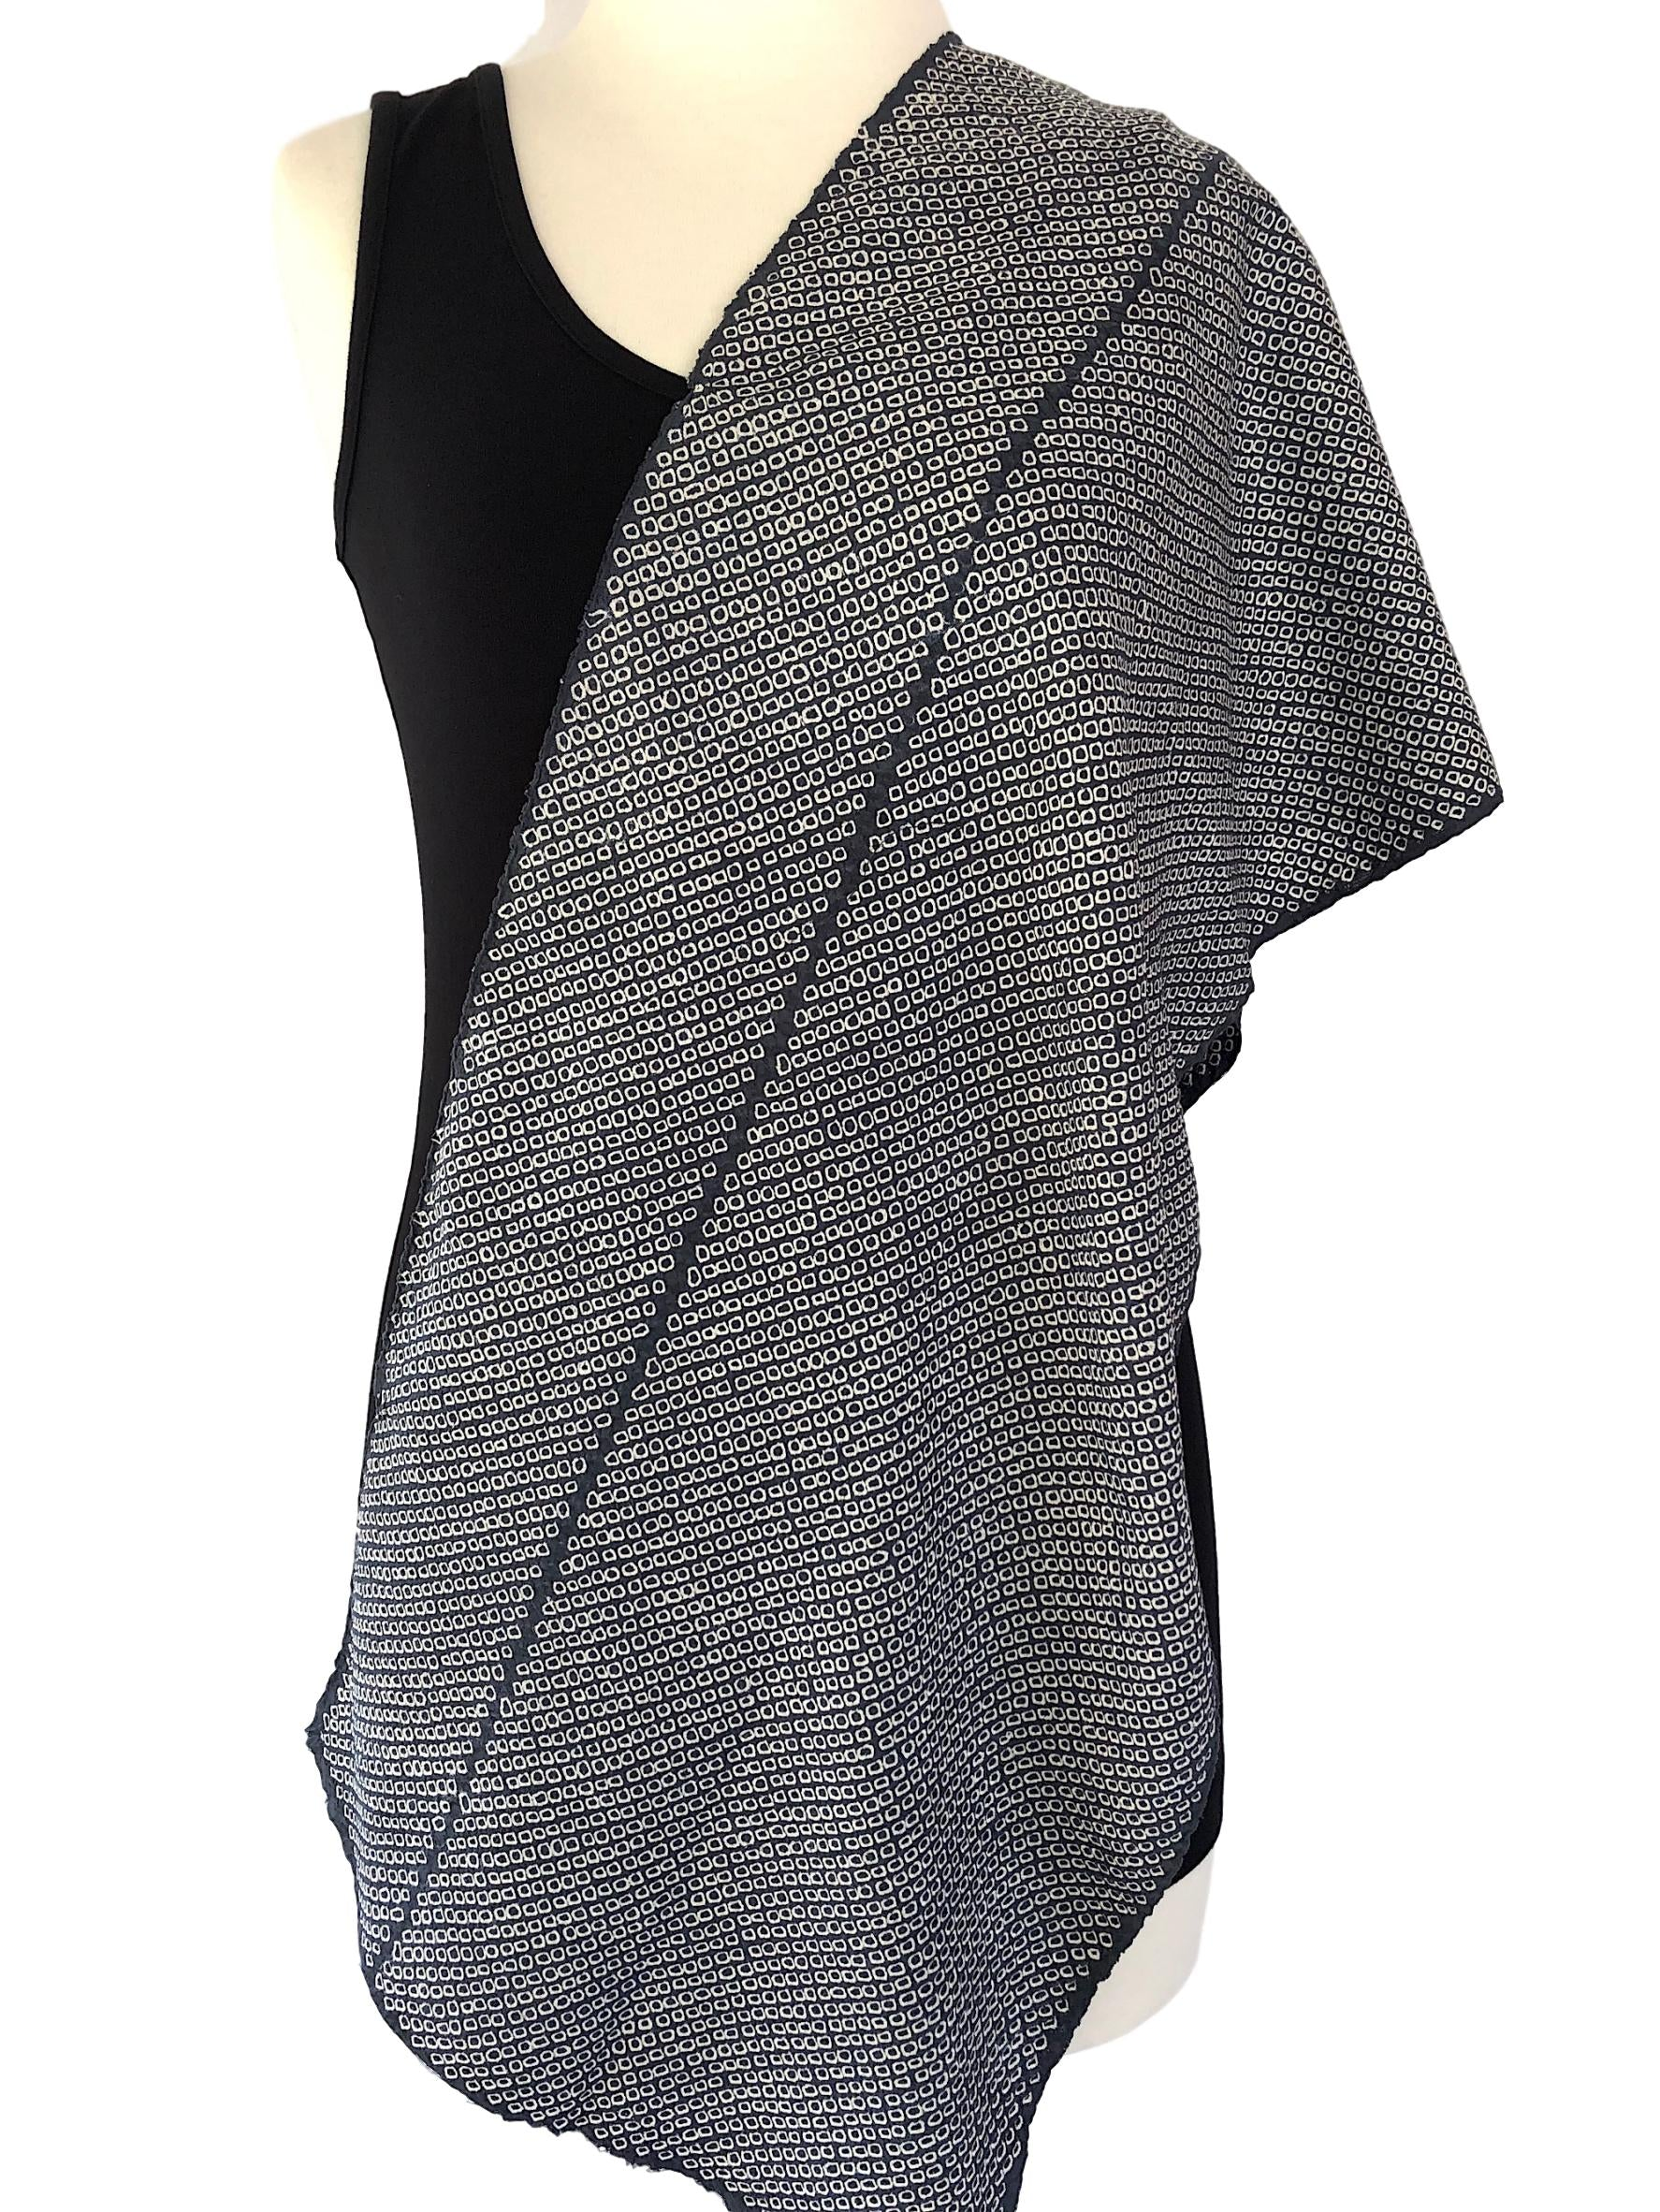 Dove Grey silk shibori scarf - Pallu Design